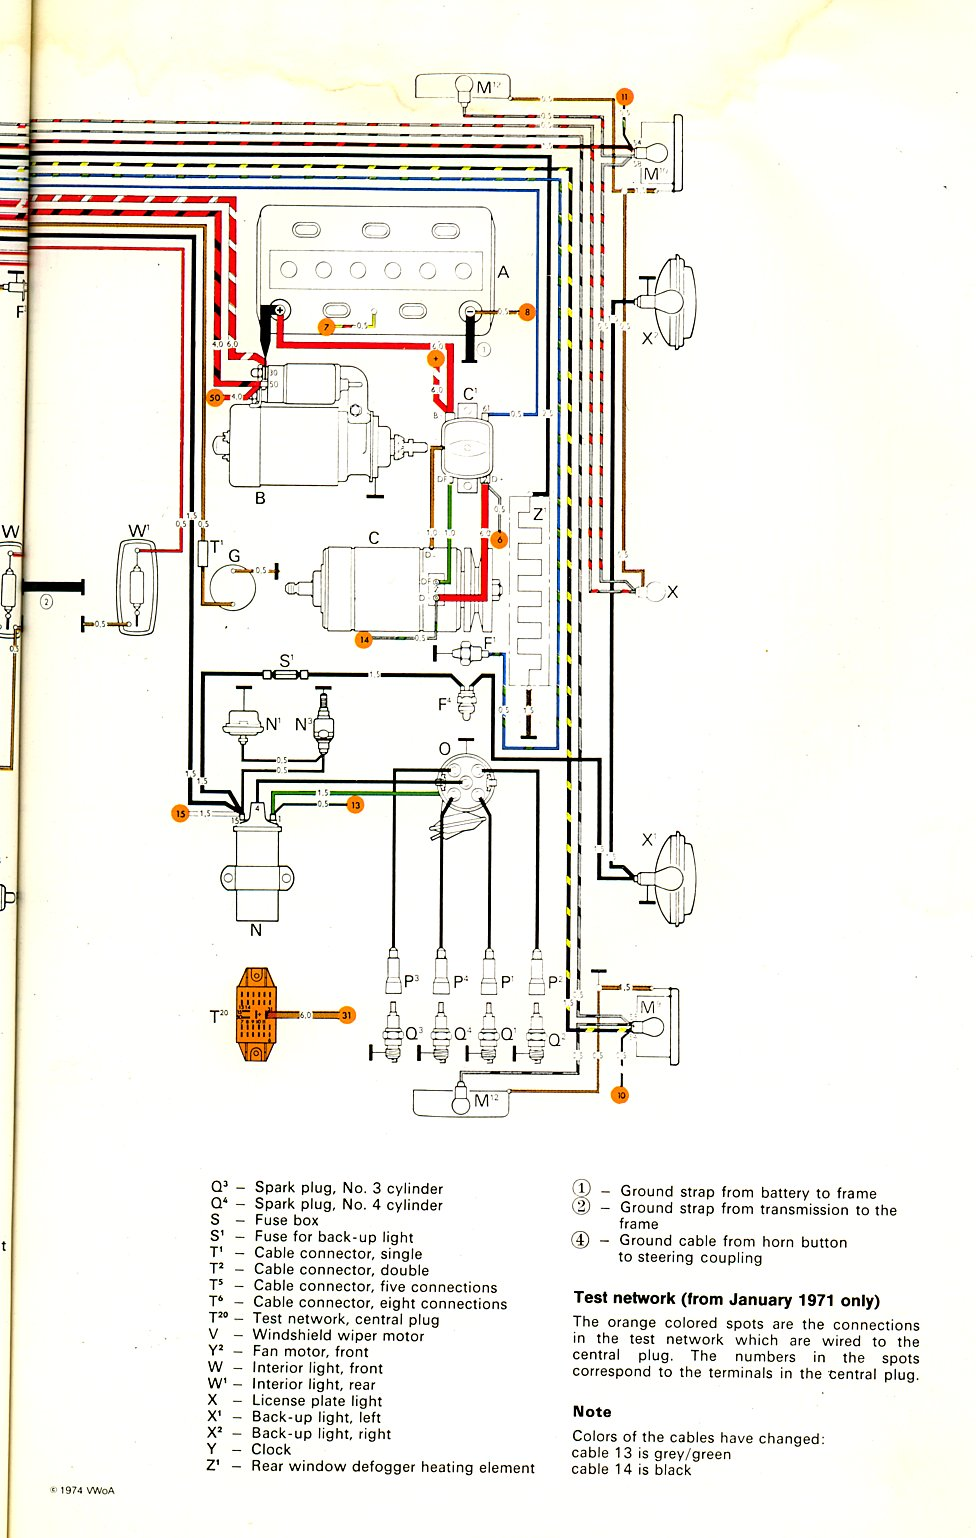 Type 2 Wiring Diagrams Ford Rear Wiper Motor Diagram